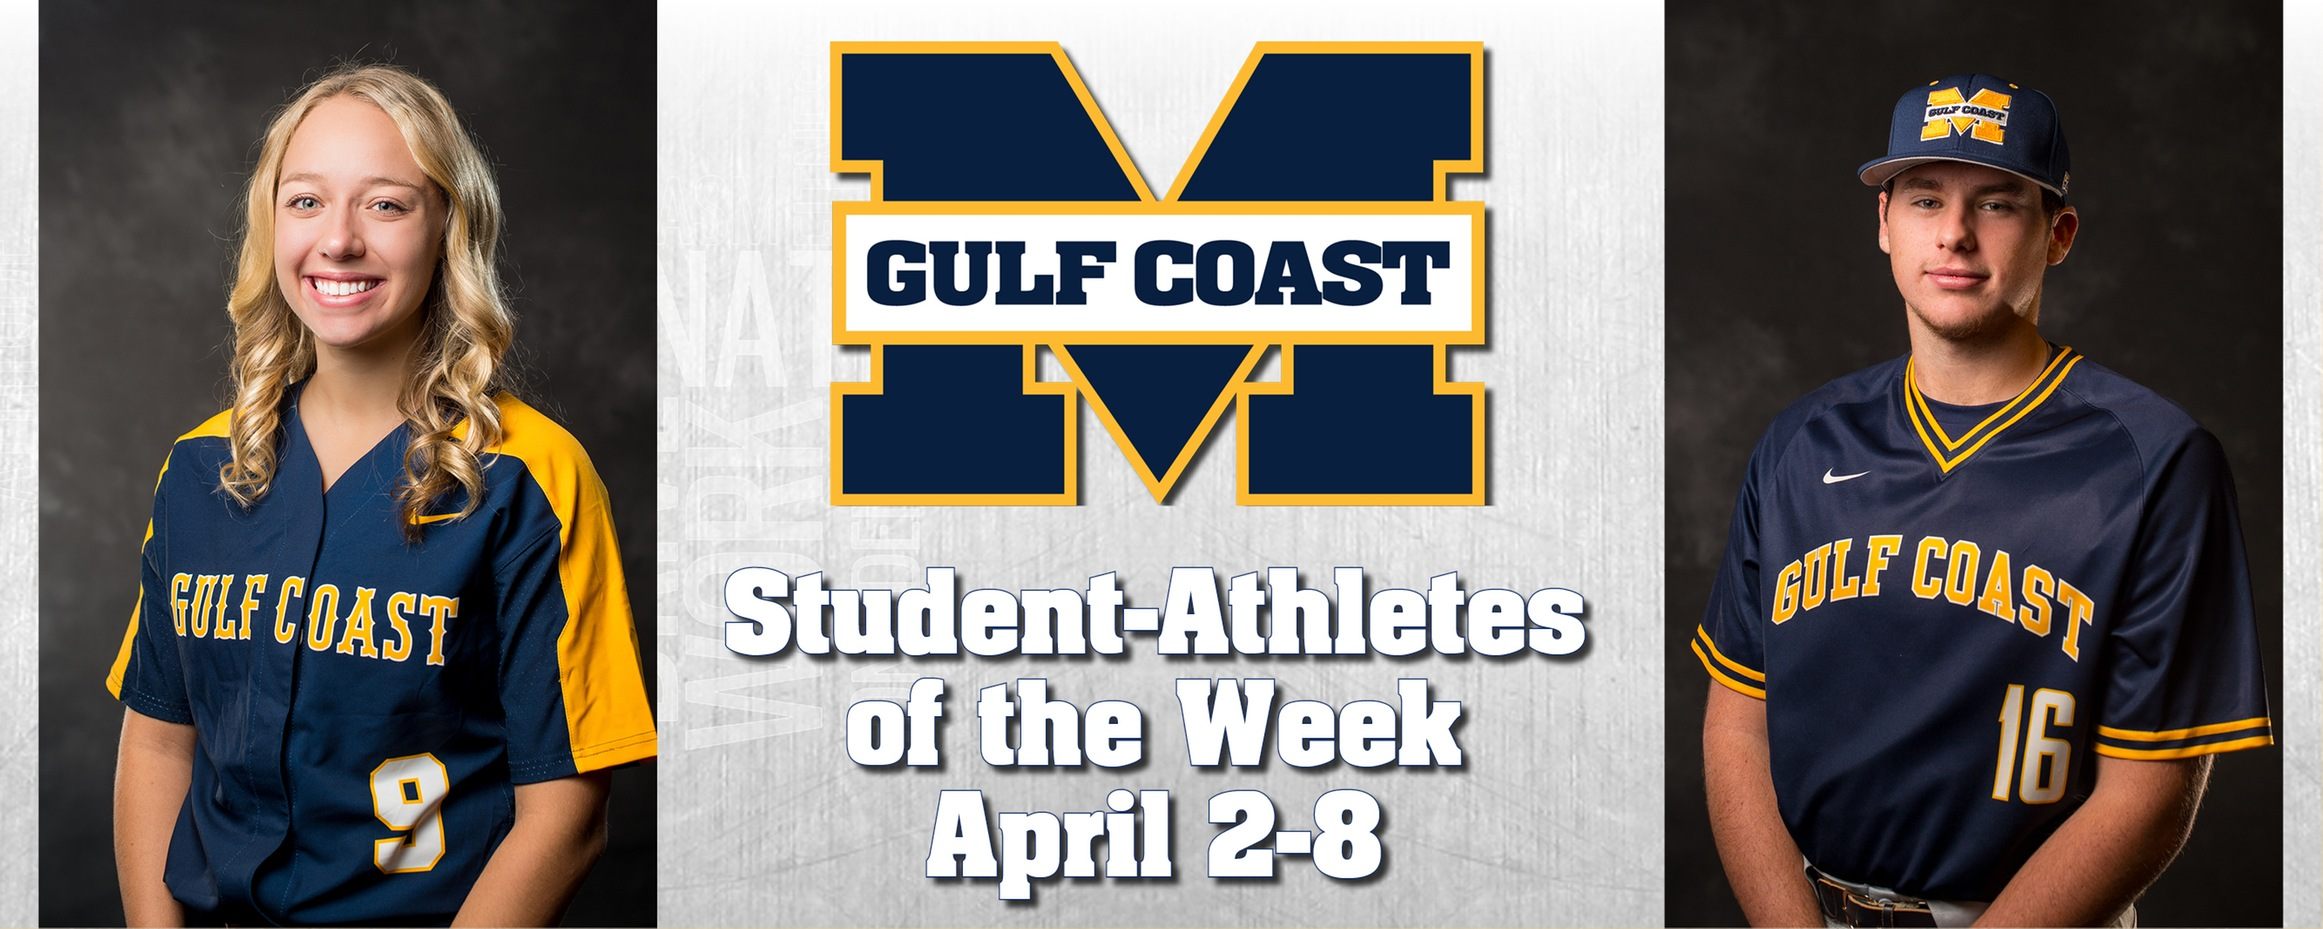 Sanders, Lewis named MGCCC Student-Athletes of the Week